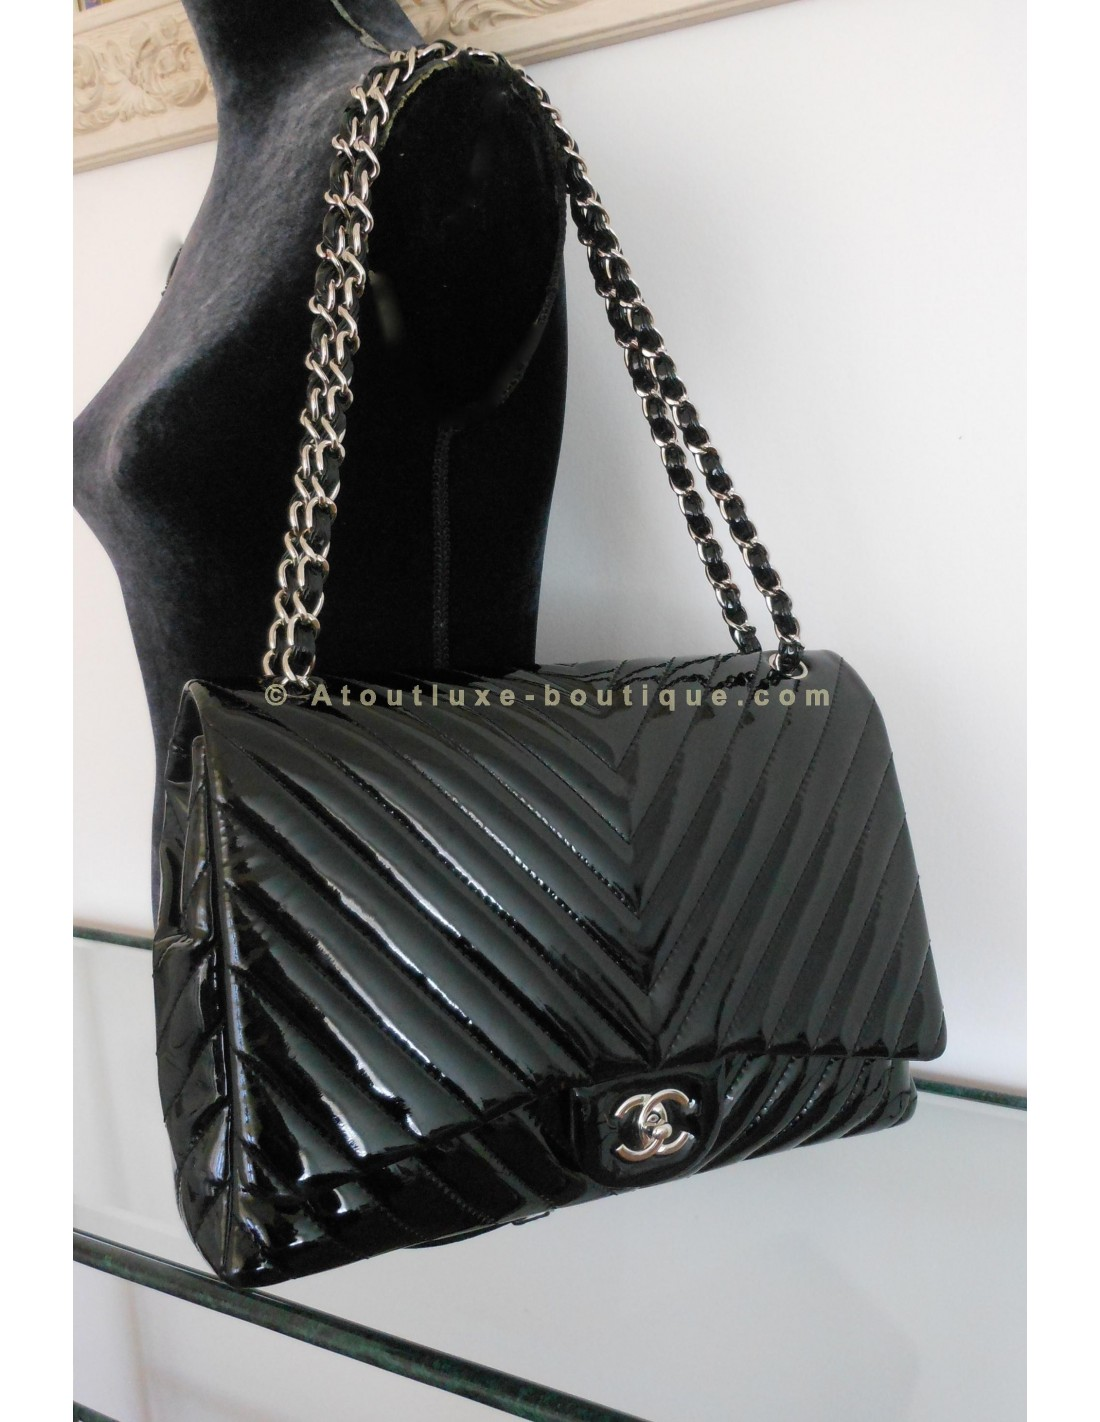 Sac chanel jumbo chevron atoutluxe boutique for Sac chanel interieur